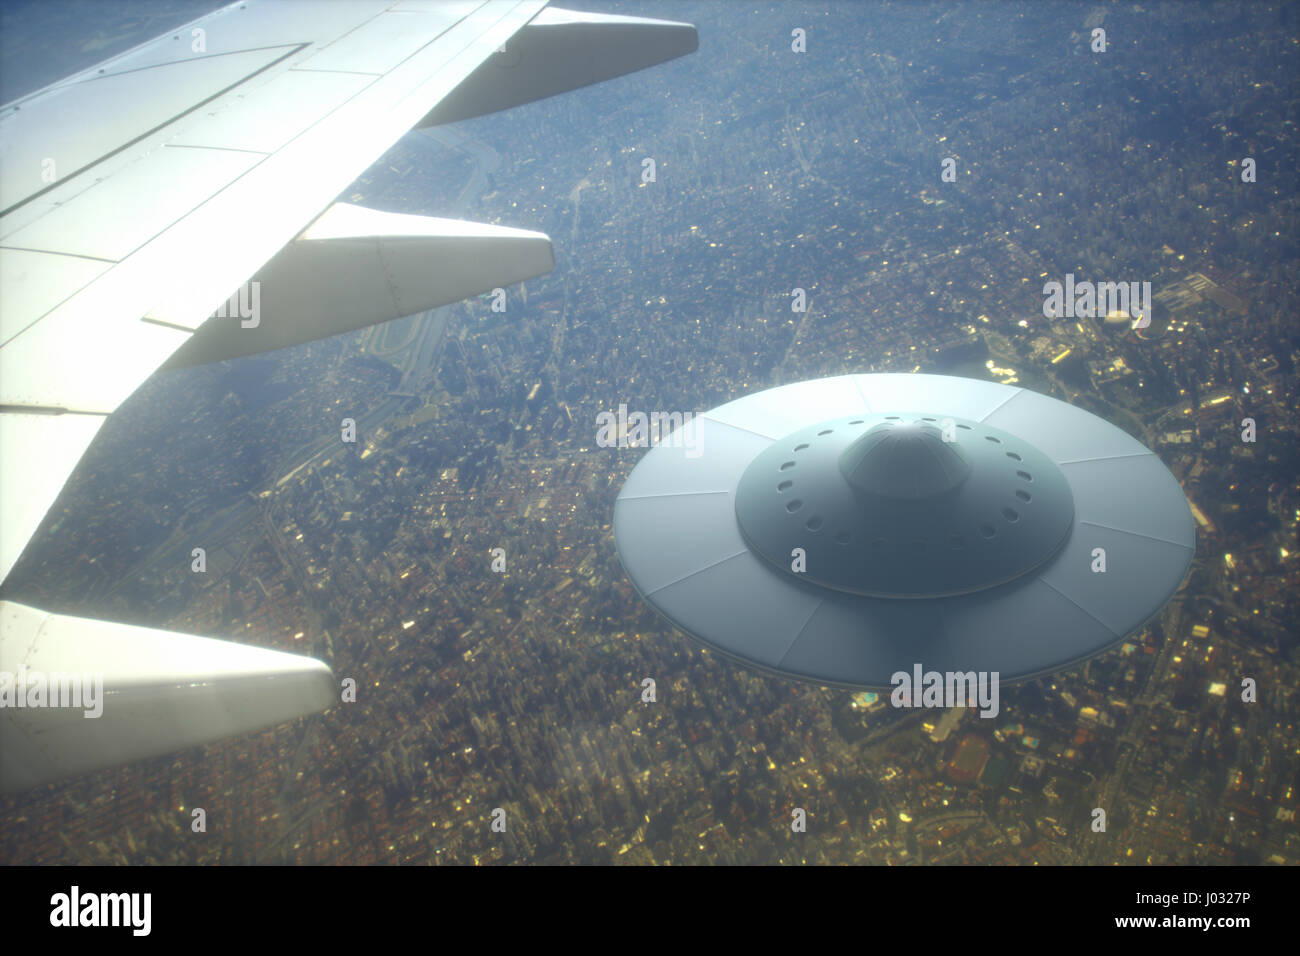 3D illustration with photography. Alien spaceship flying together with airplane. - Stock Image